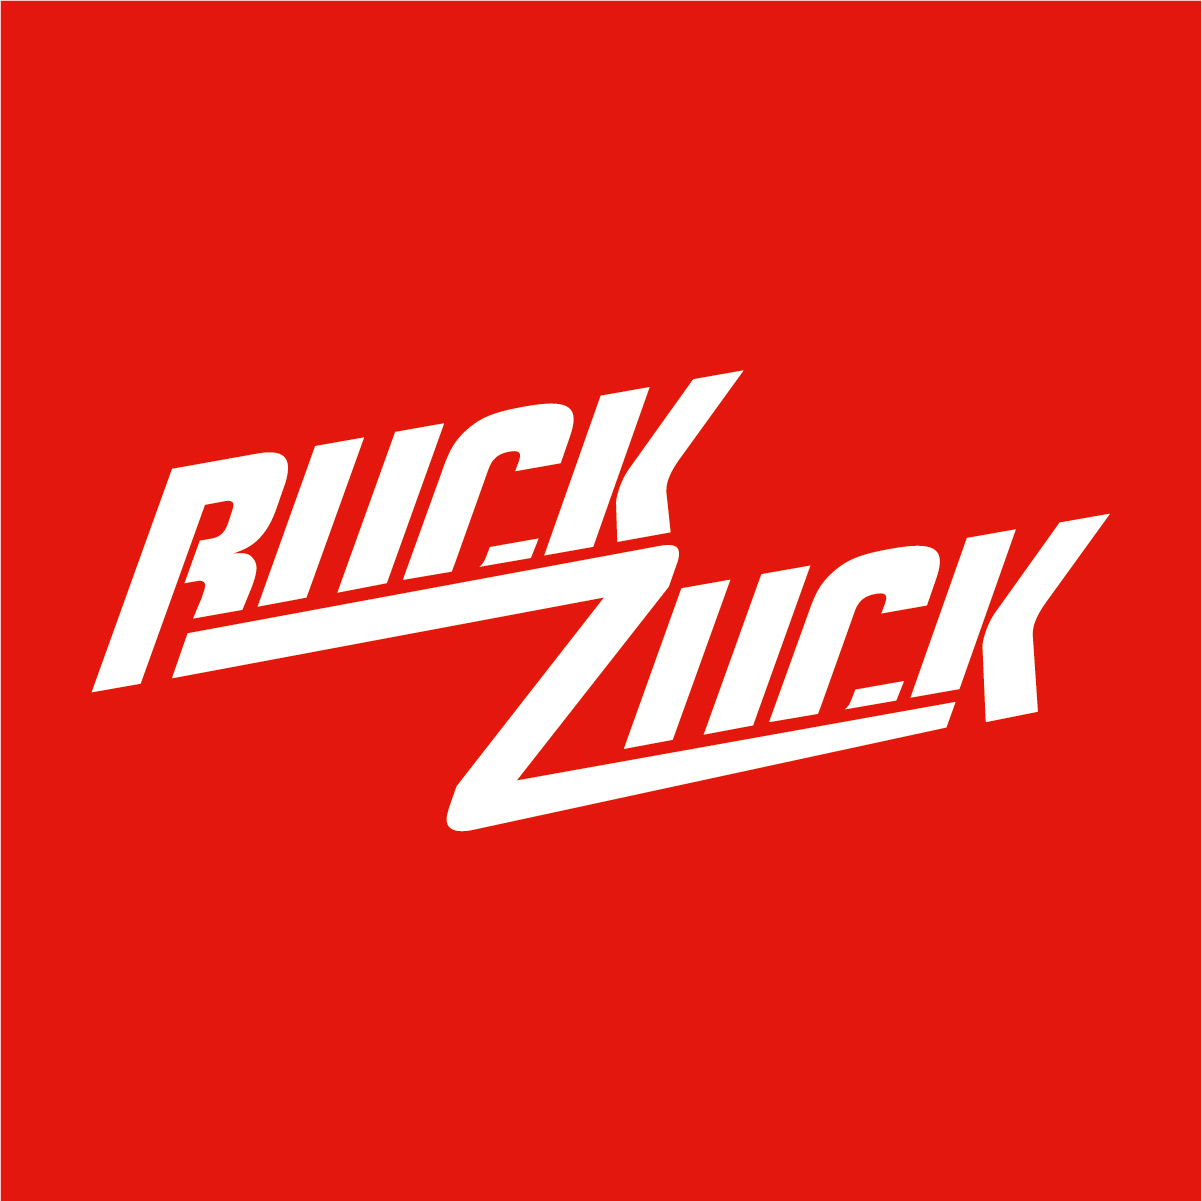 MUSTER Laminat 8mm Taiga Eiche Natur Landhausdiele x-tra Langdiele 4V-Fuge